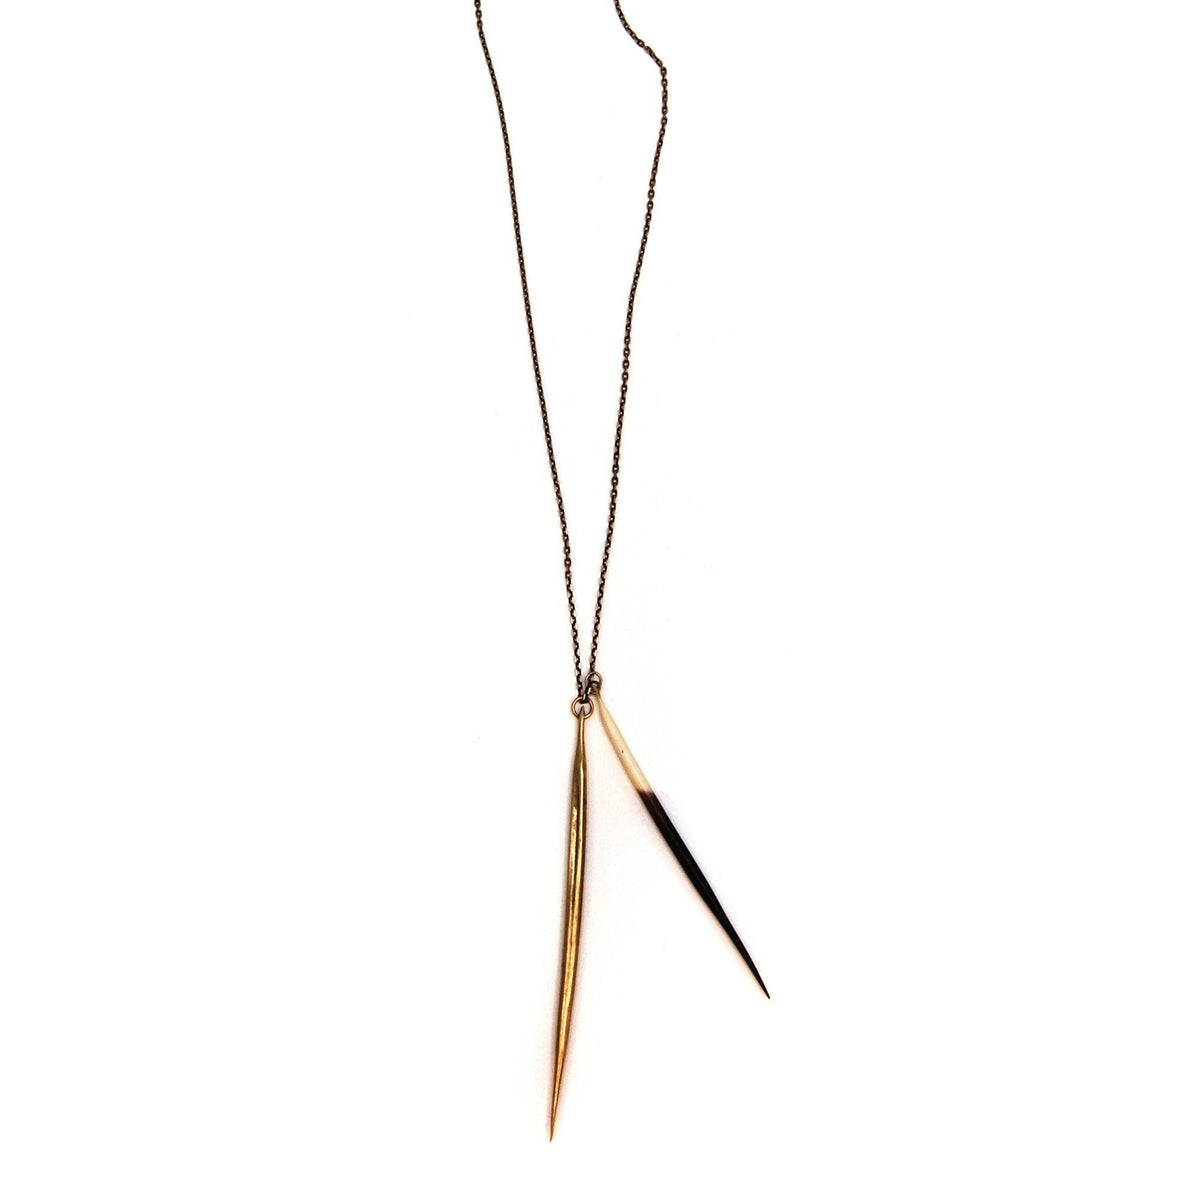 Porcupine Quill / Brass Quill Pendant